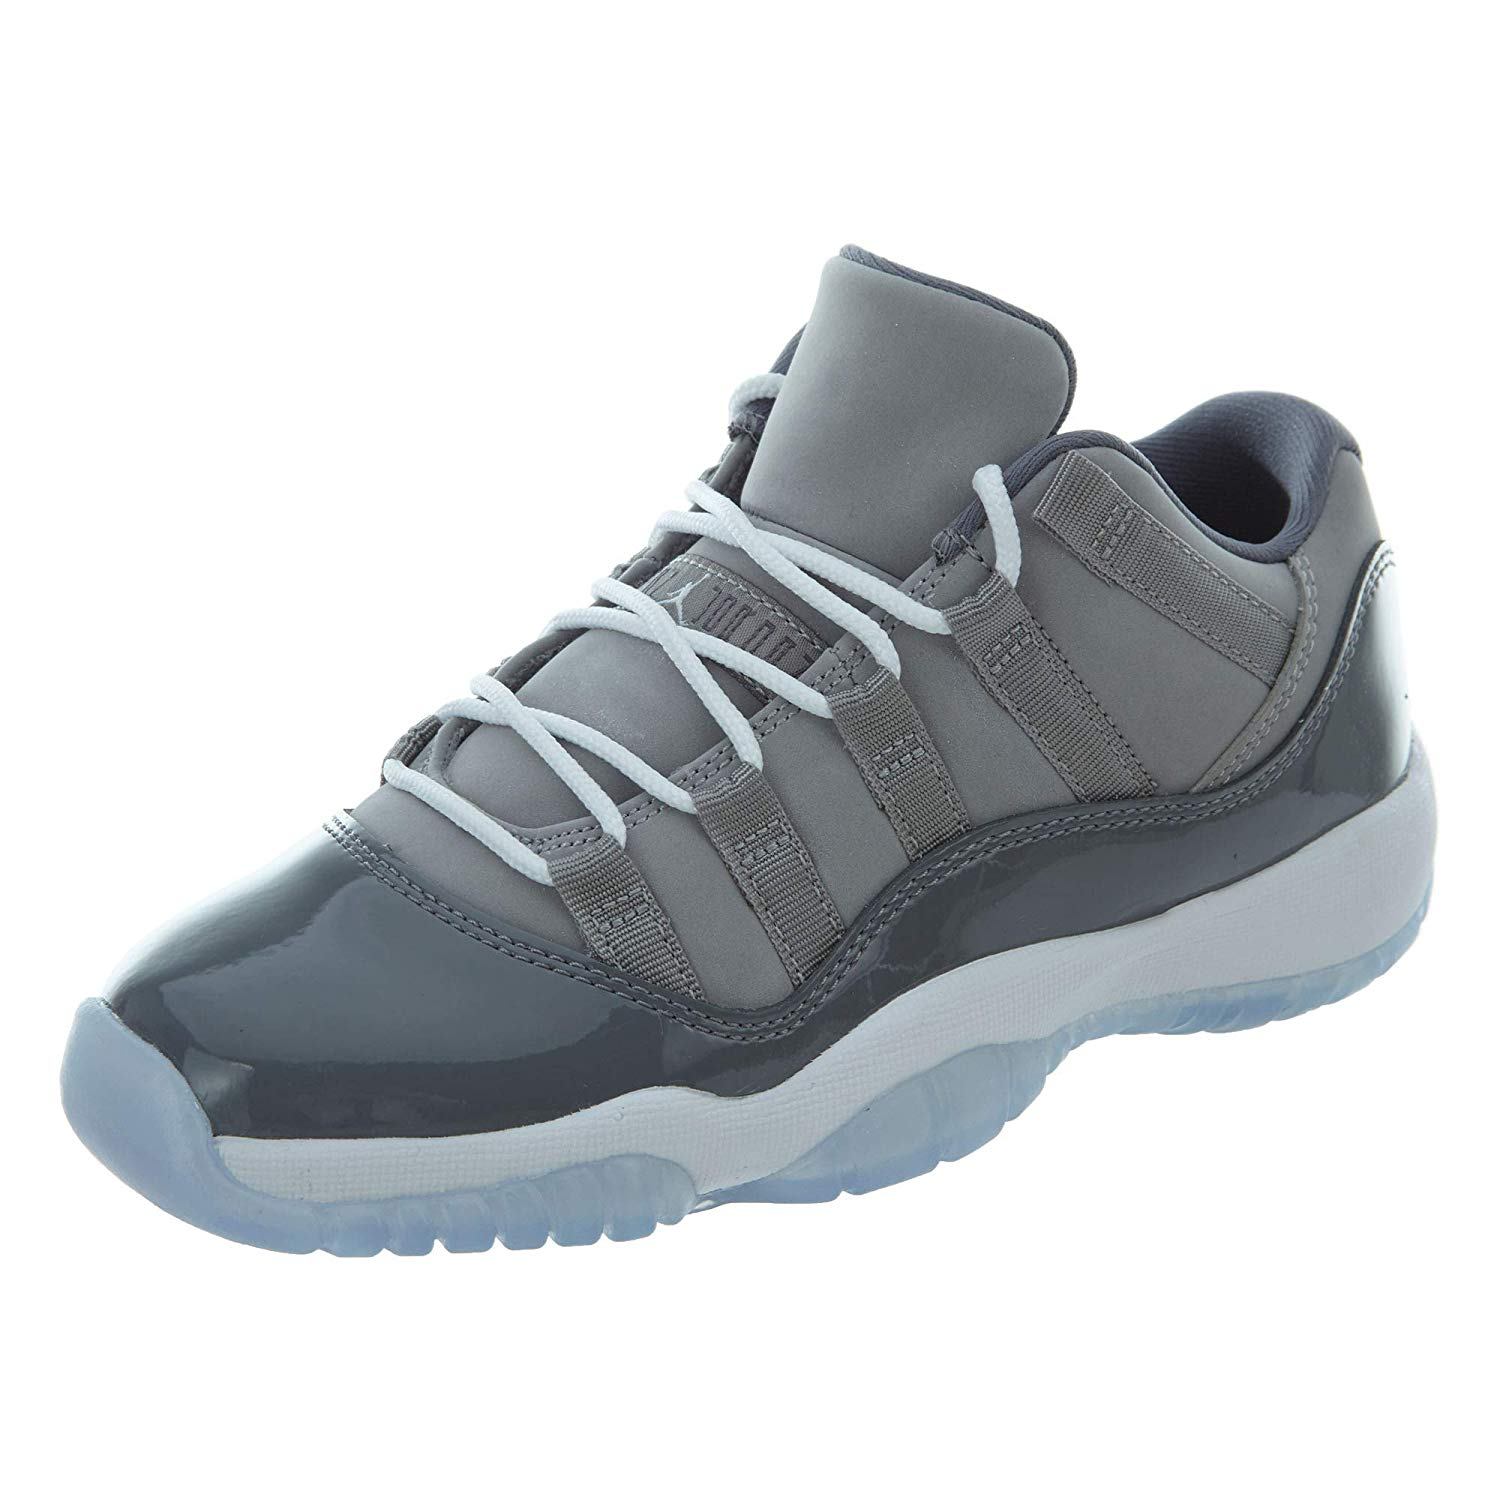 hot sale online 177c9 bf4b7 Get Quotations · JORDAN(ジョーダン) Jordan Retro 11 Low Cool Grey Medium Grey  White-Gunsmoke